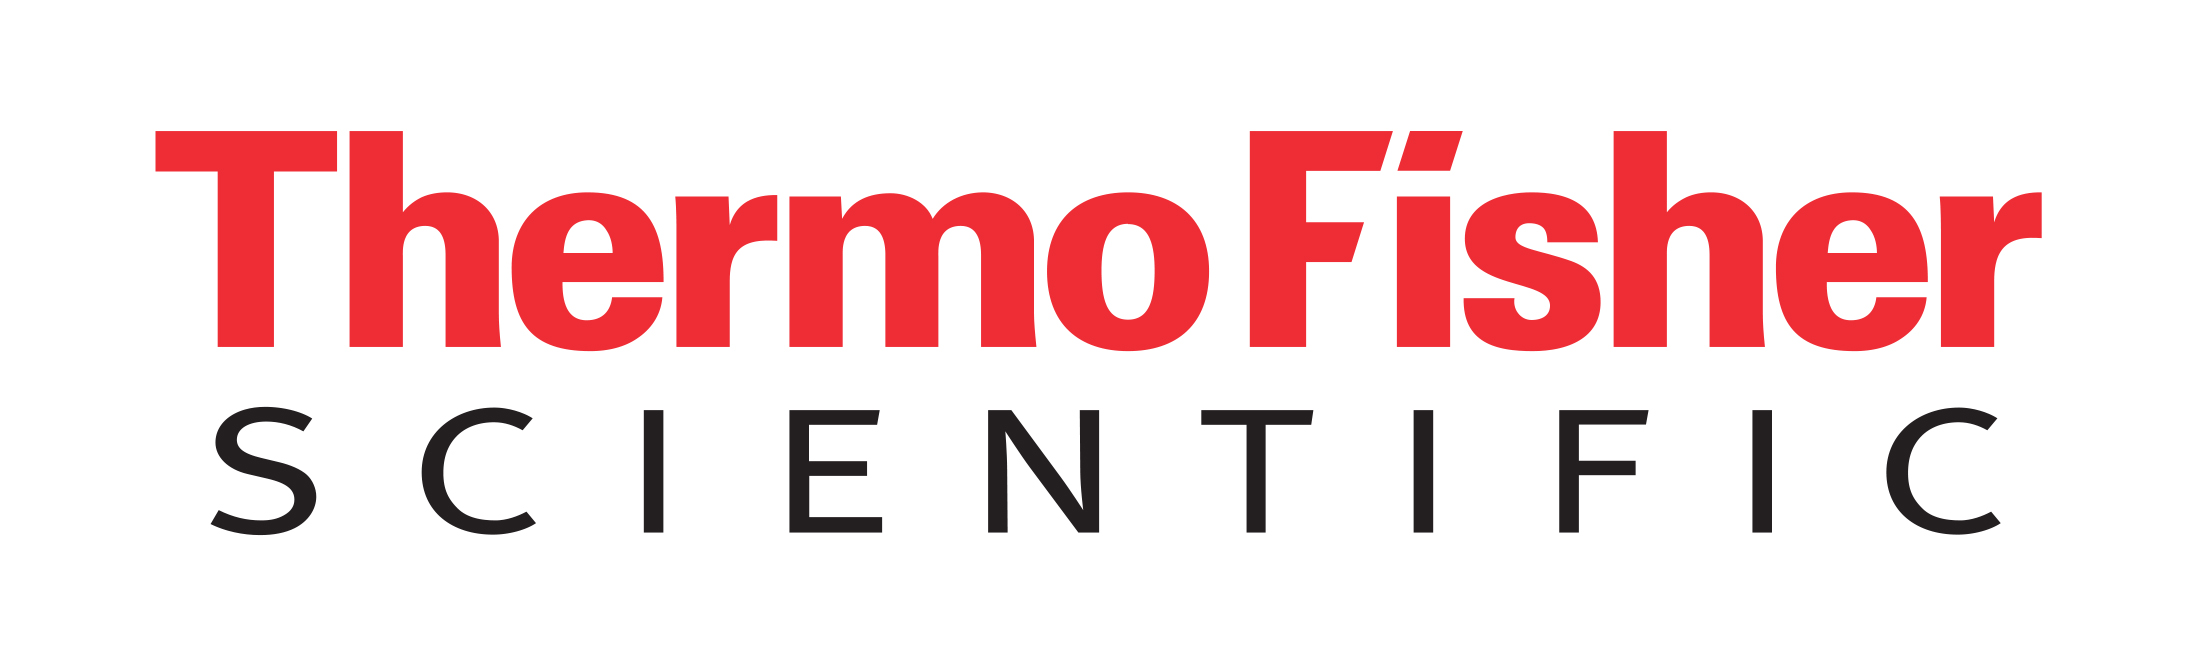 Thermo Fisher Scientific_logo_LG